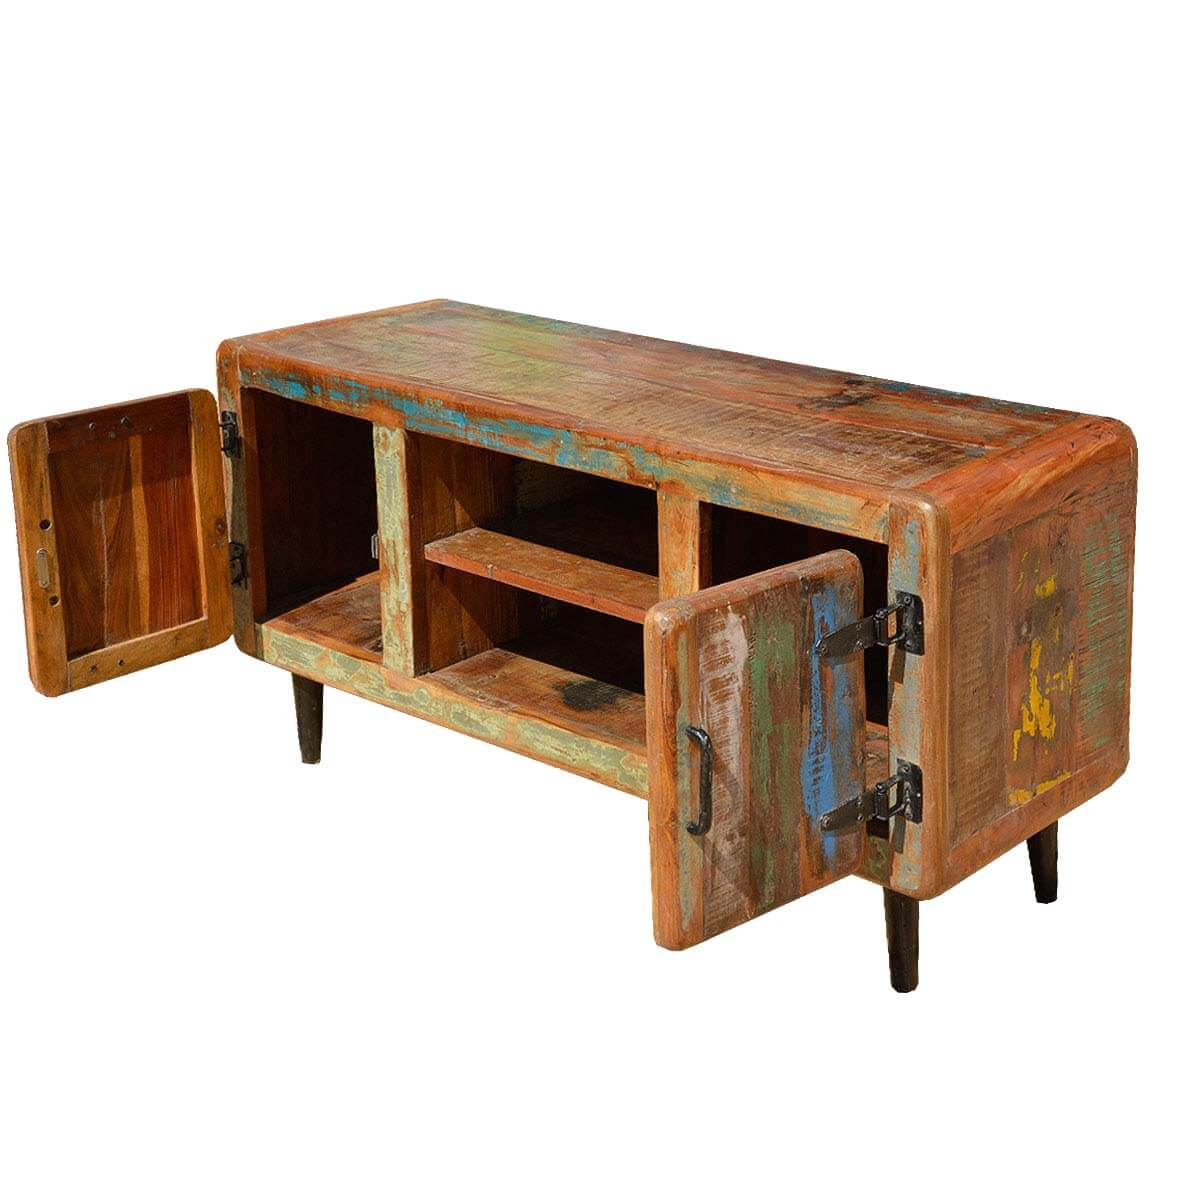 Furniture Collection Double D Ranch Trend Home Design. Furniture Collection Double  D Ranch Trend Home Design. Download